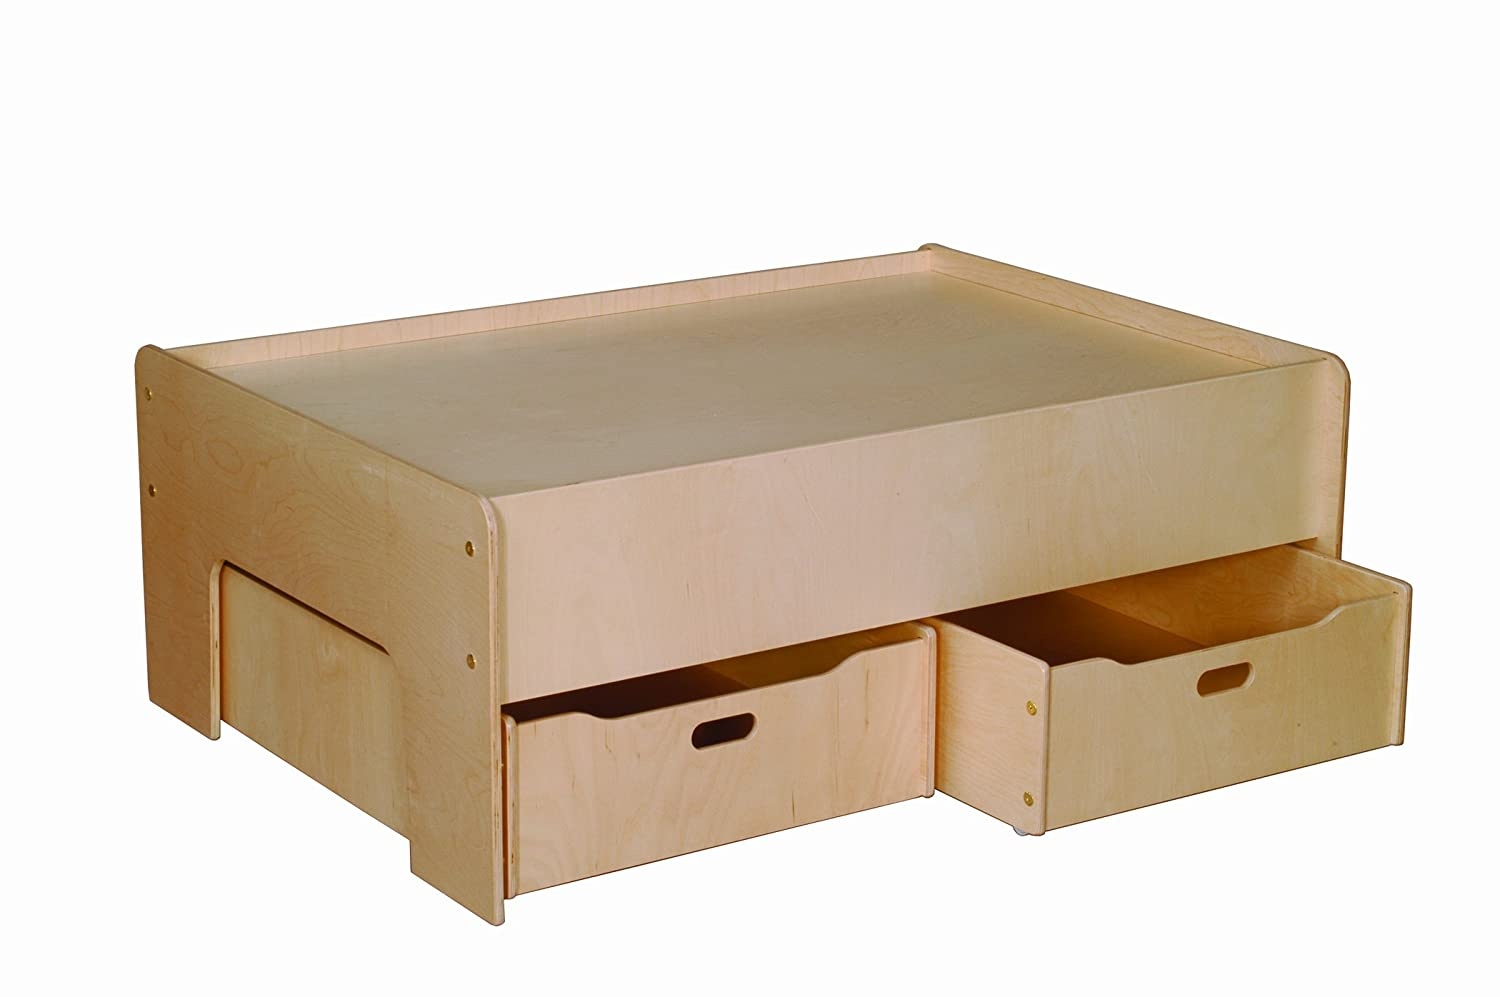 Amazon Little Colorado Play Table and Storage Drawers